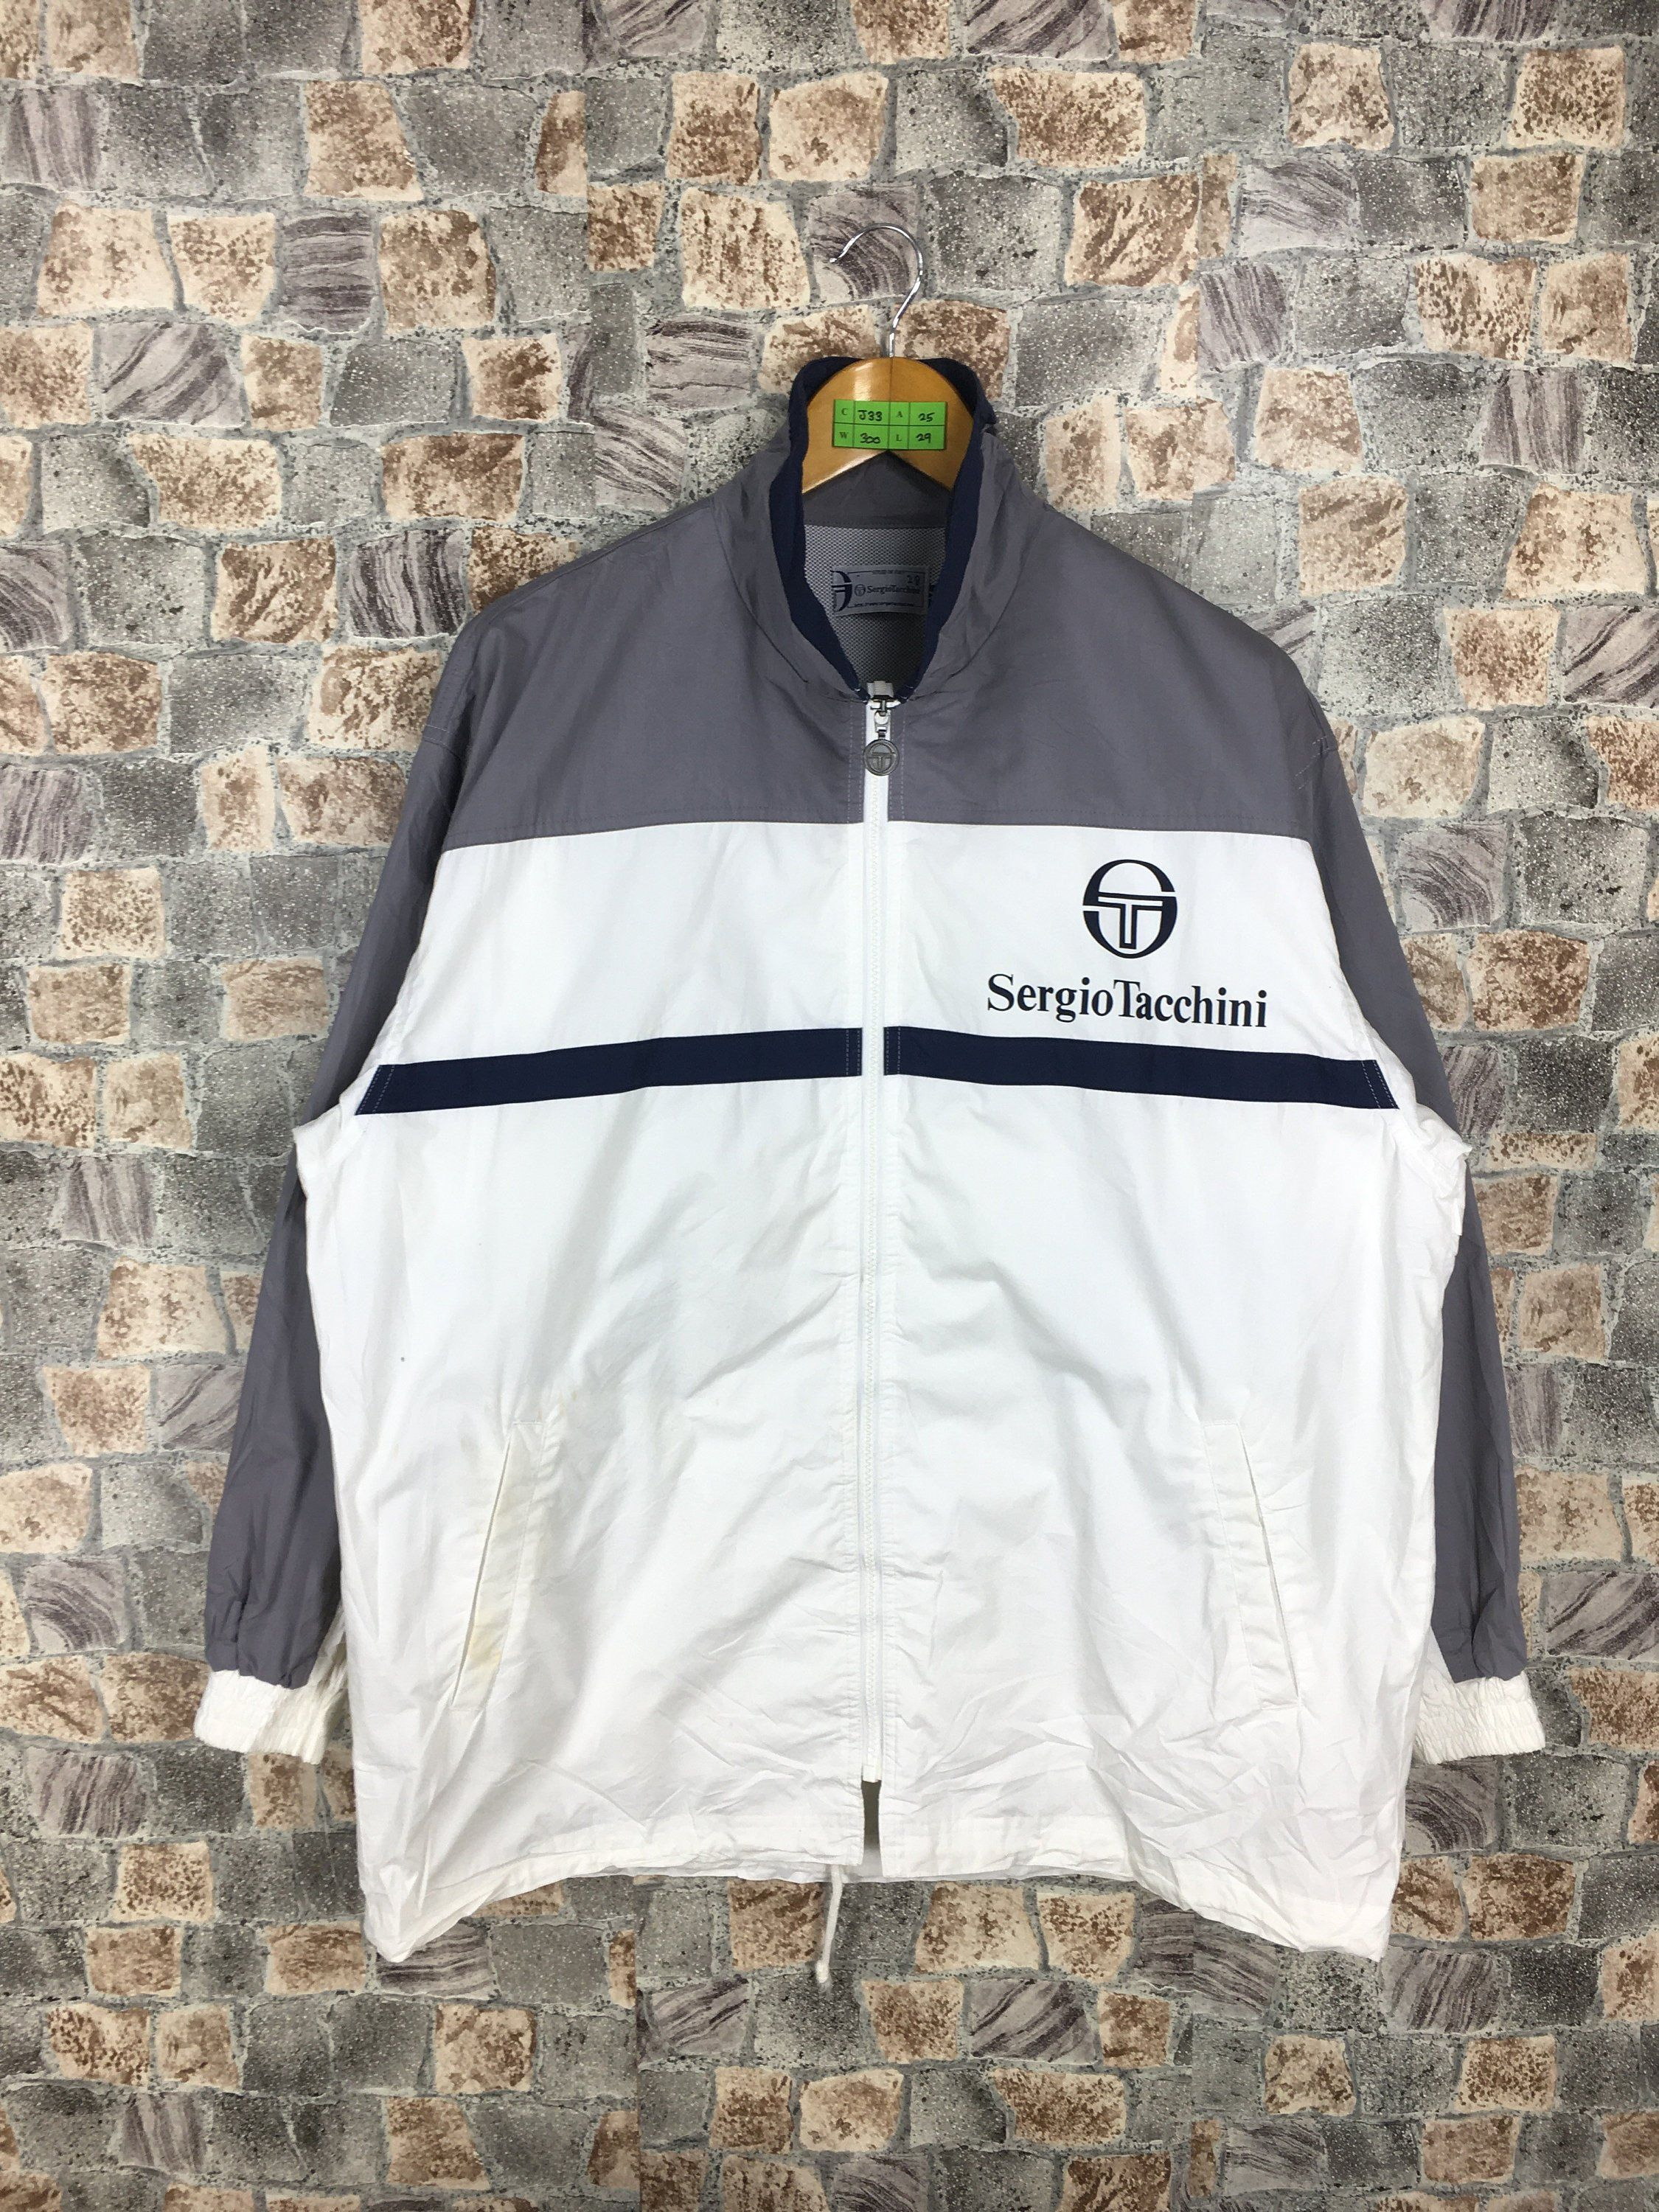 Vintage 90's Sergio Tacchini Windbreaker Jacket Medium